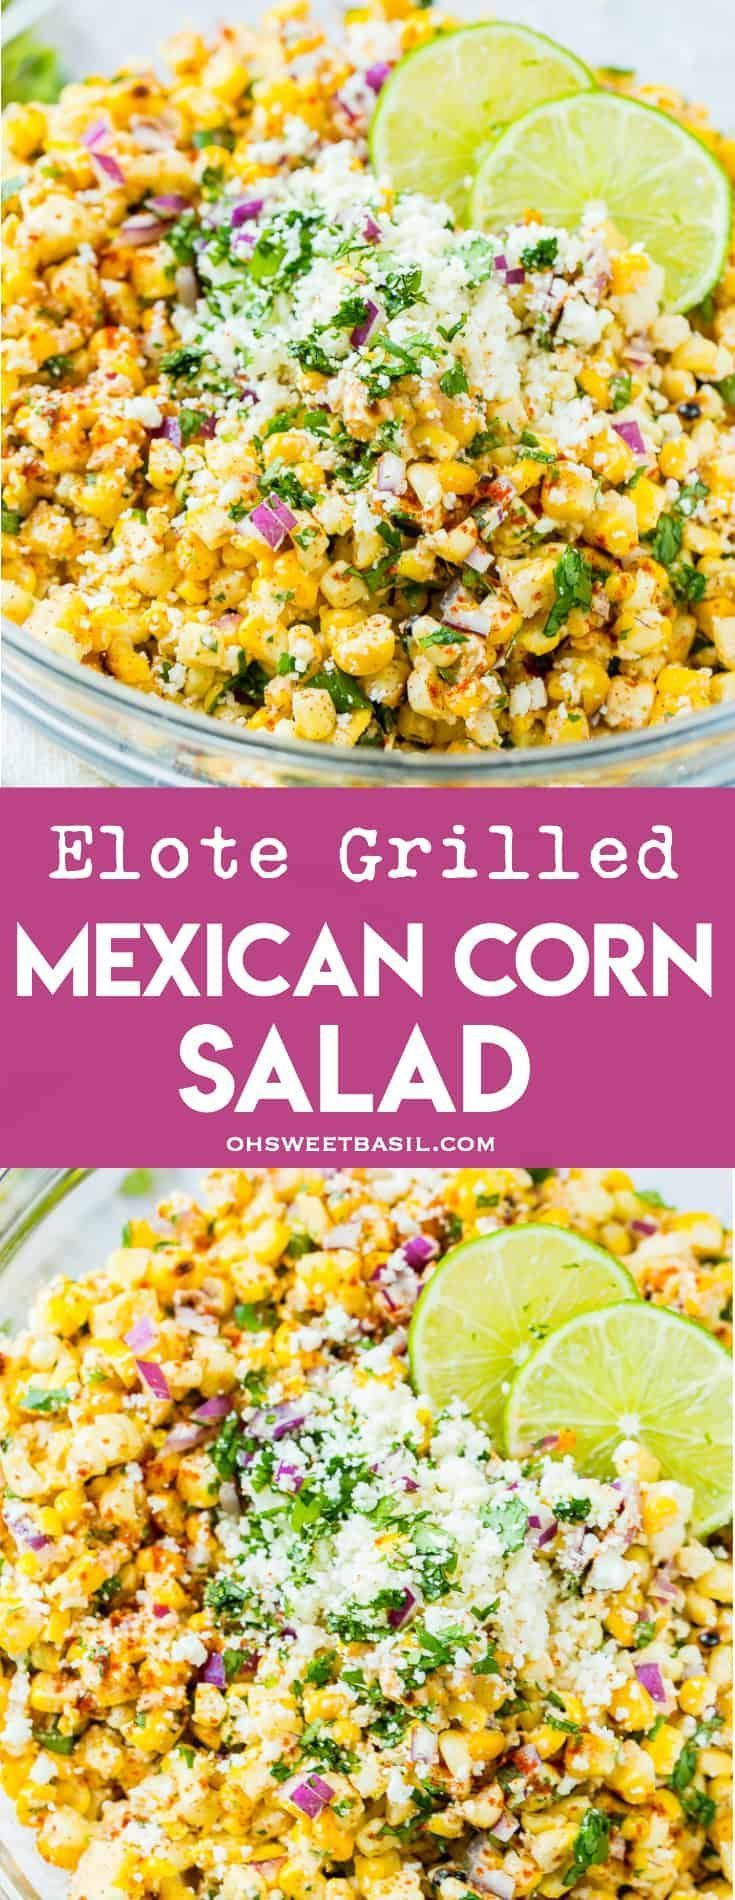 Photo of Elote Grilled Mexican Corn Salad – Oh Sweet Basil